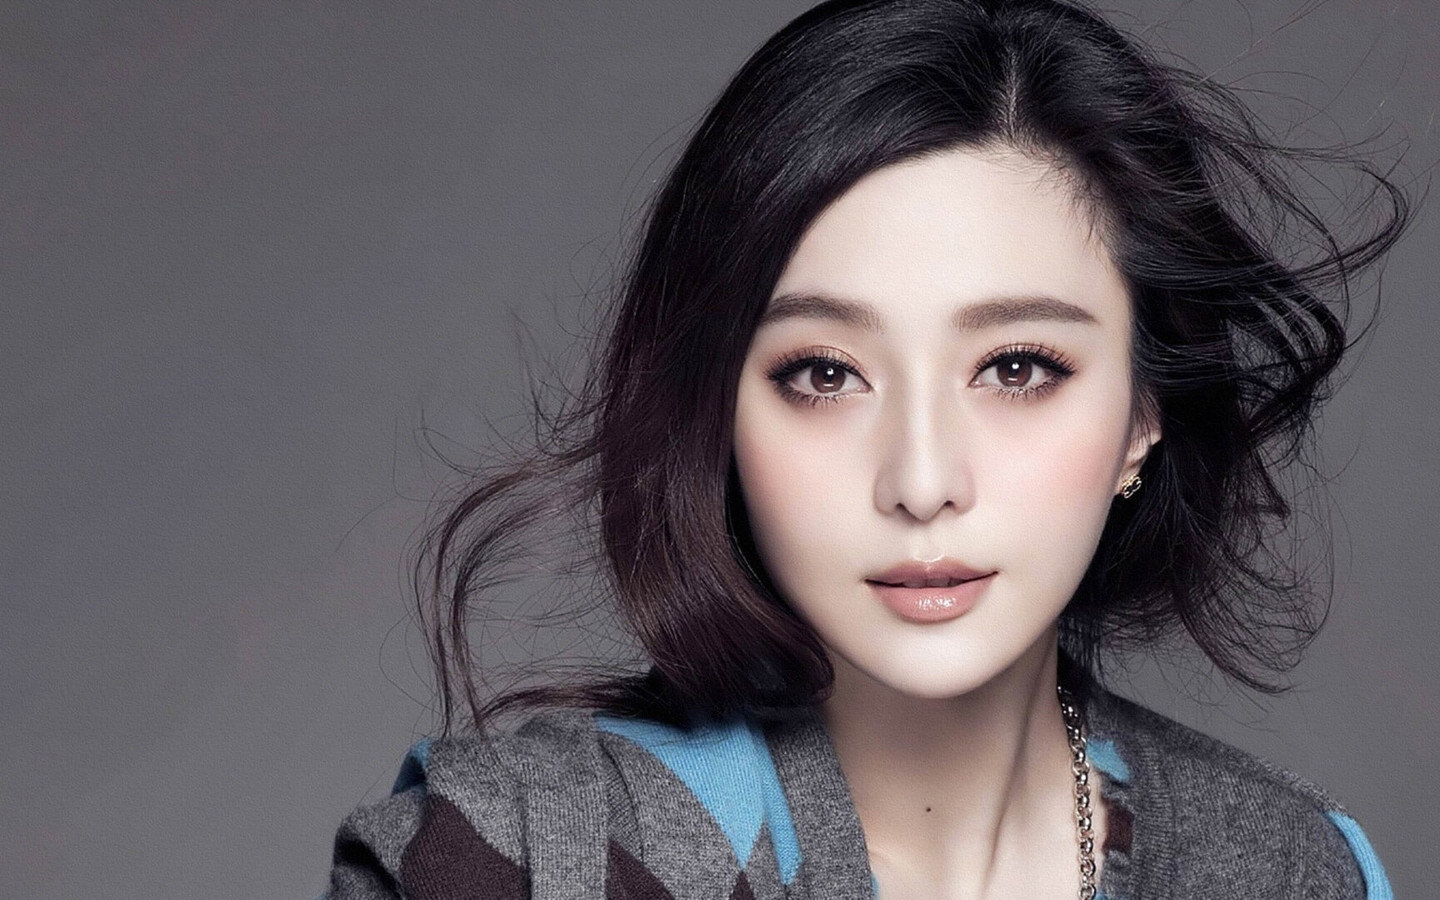 Fan Bingbing Is The 4th Highest Paid Actress In Hollywood